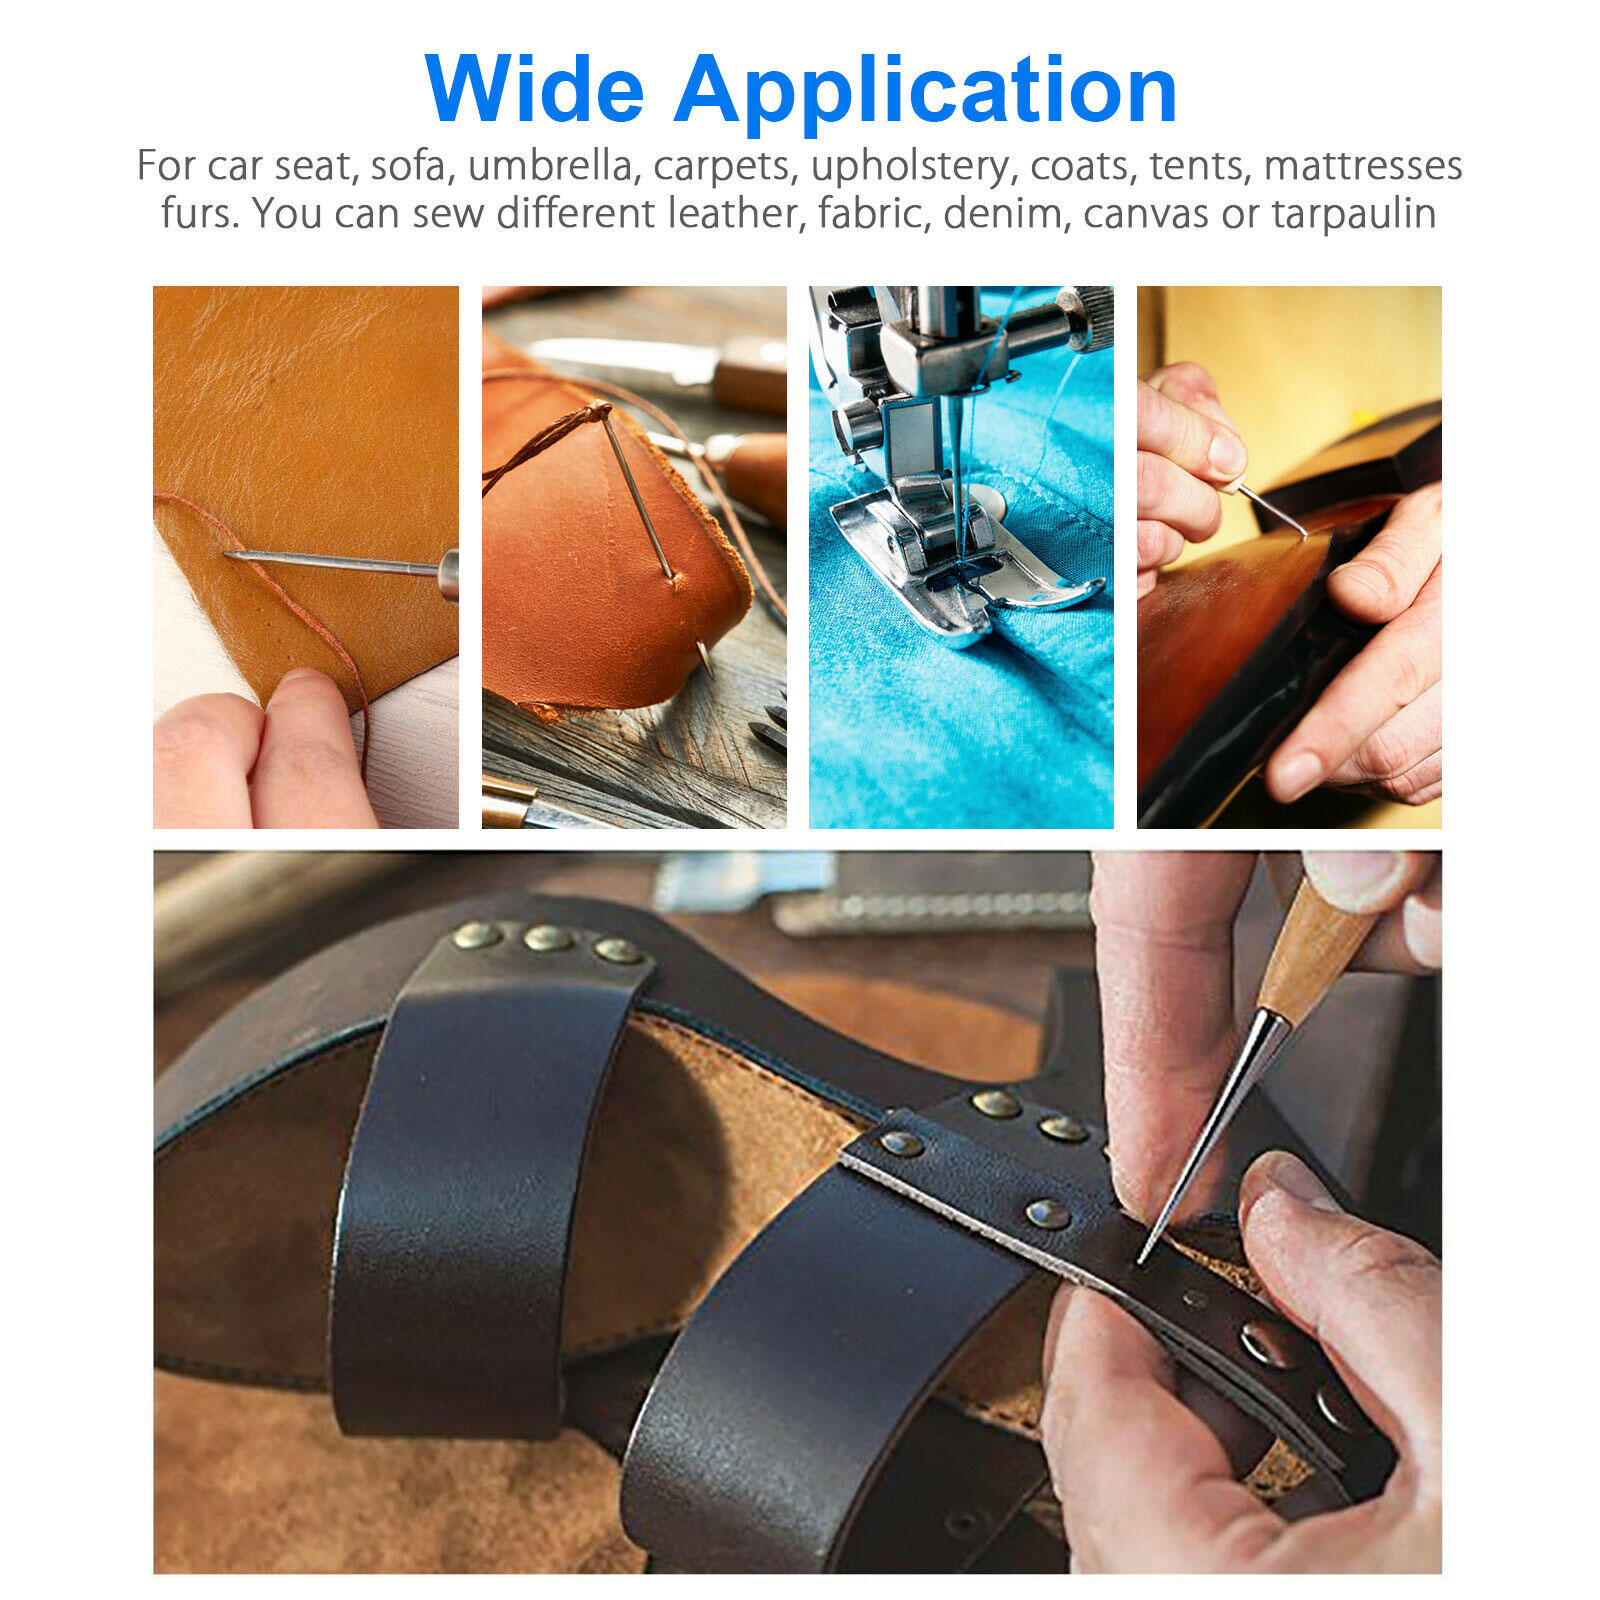 24-Leather-Craft-Punch-Tools-Kit-Stitching-Carving-Working-Sewing-Saddle-Groover thumbnail 4